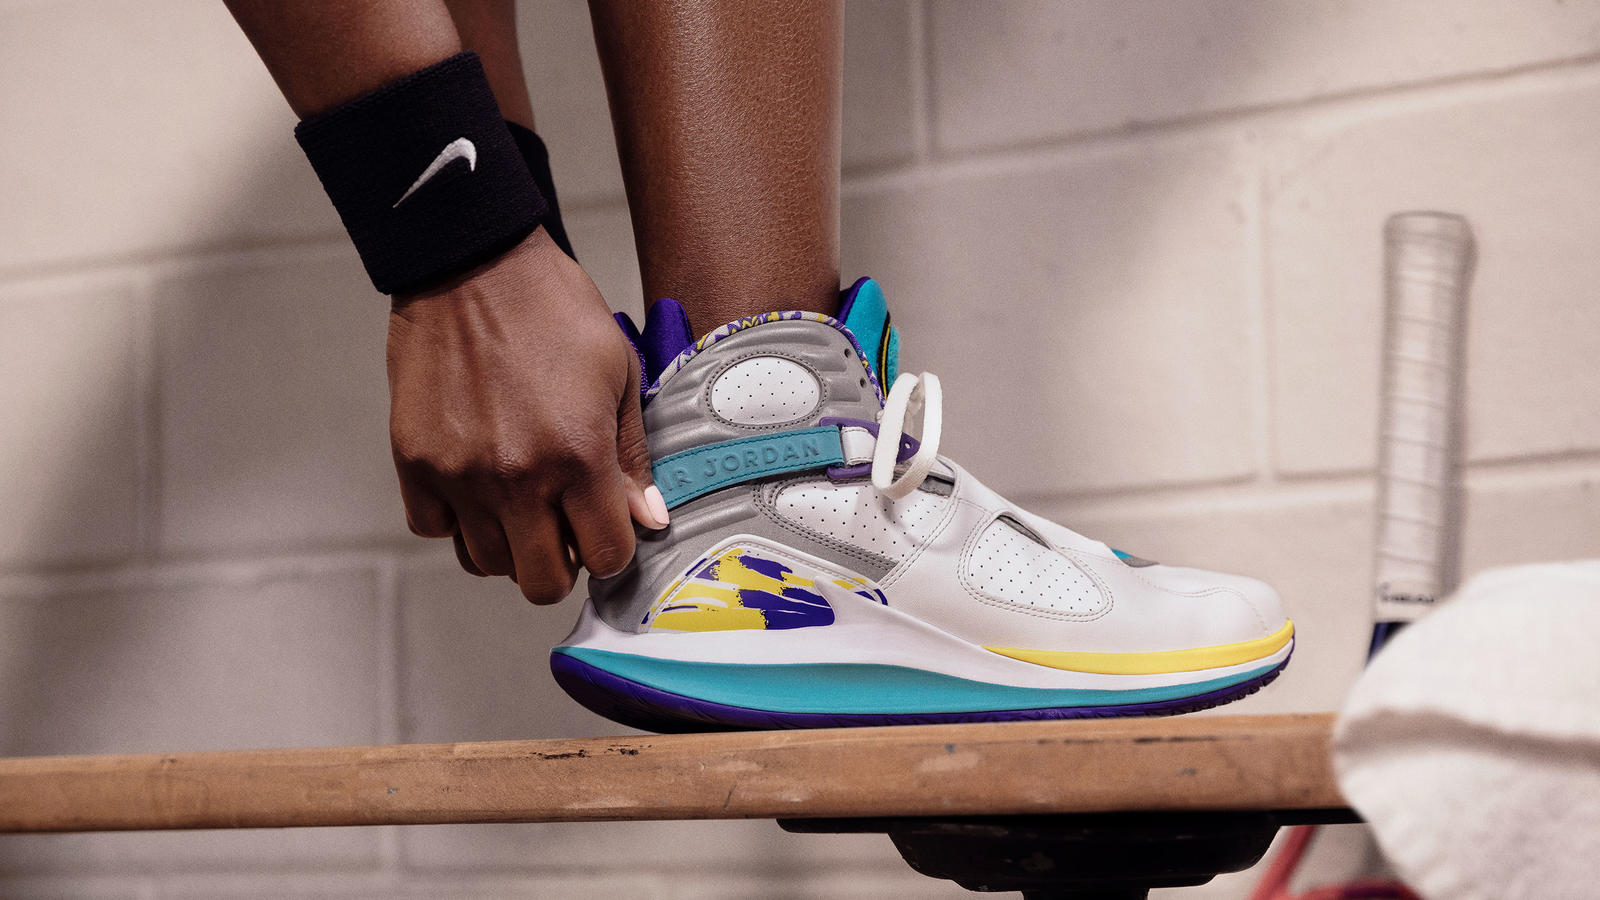 NikeCourt Air Zoom Zero x Air Jordan 8 Aqua Official Images and Release Date 0